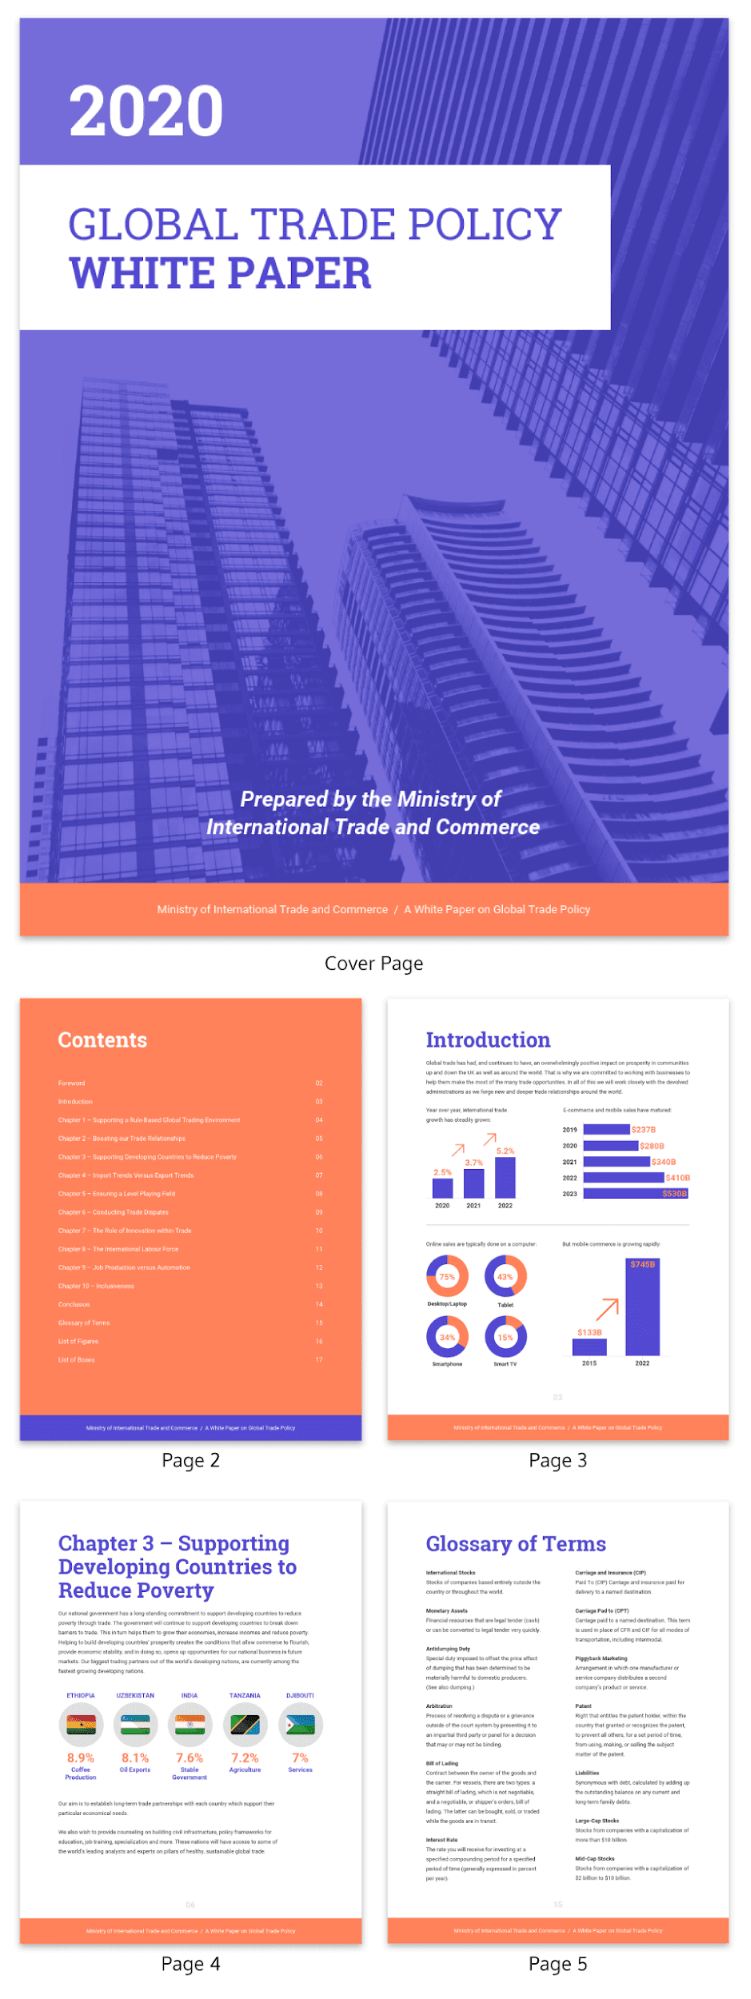 An example of White Paper with genuine value for the potential customer.